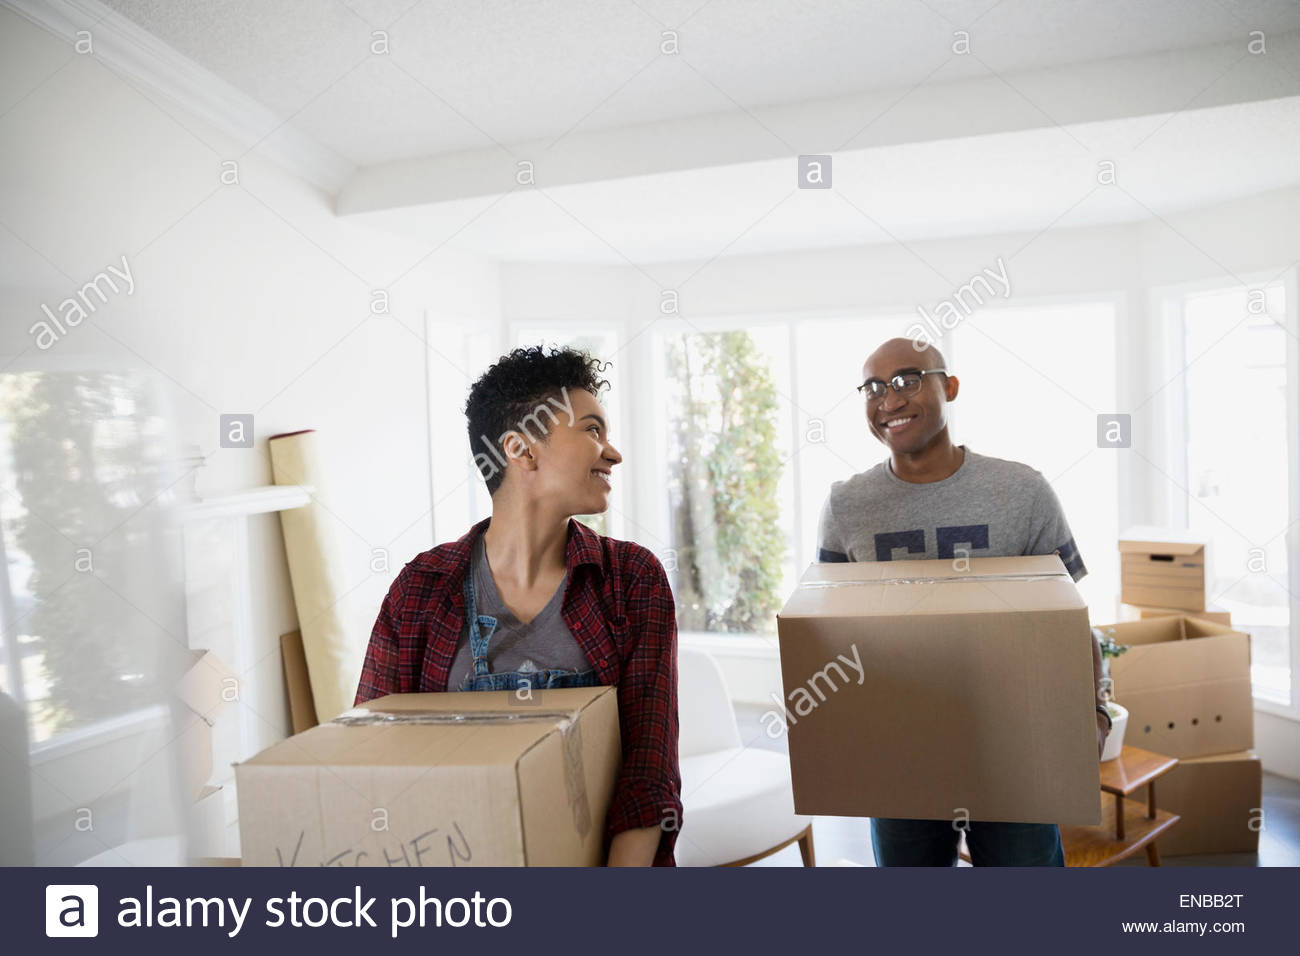 Couple carrying boxes in living room Photo Stock